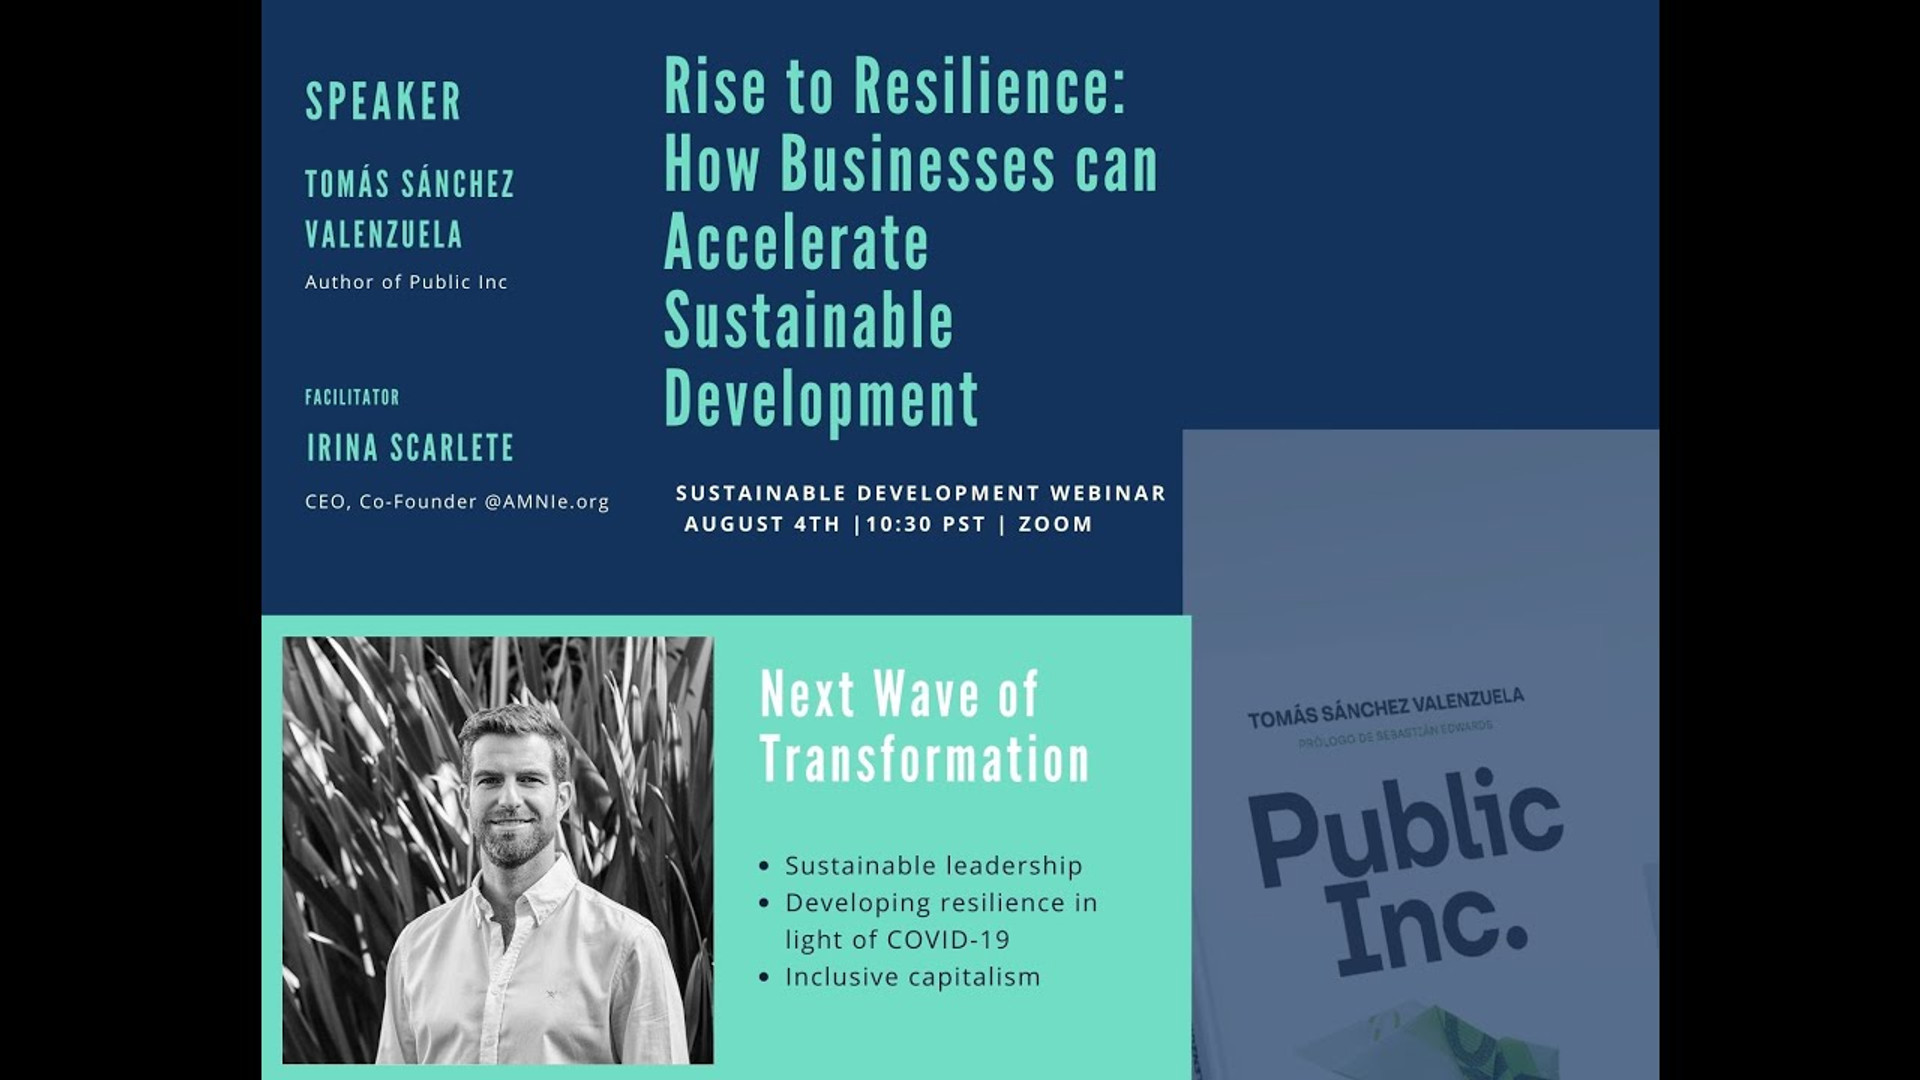 Rise to Resilience: How Businesses can Accelerate Sustainable Development